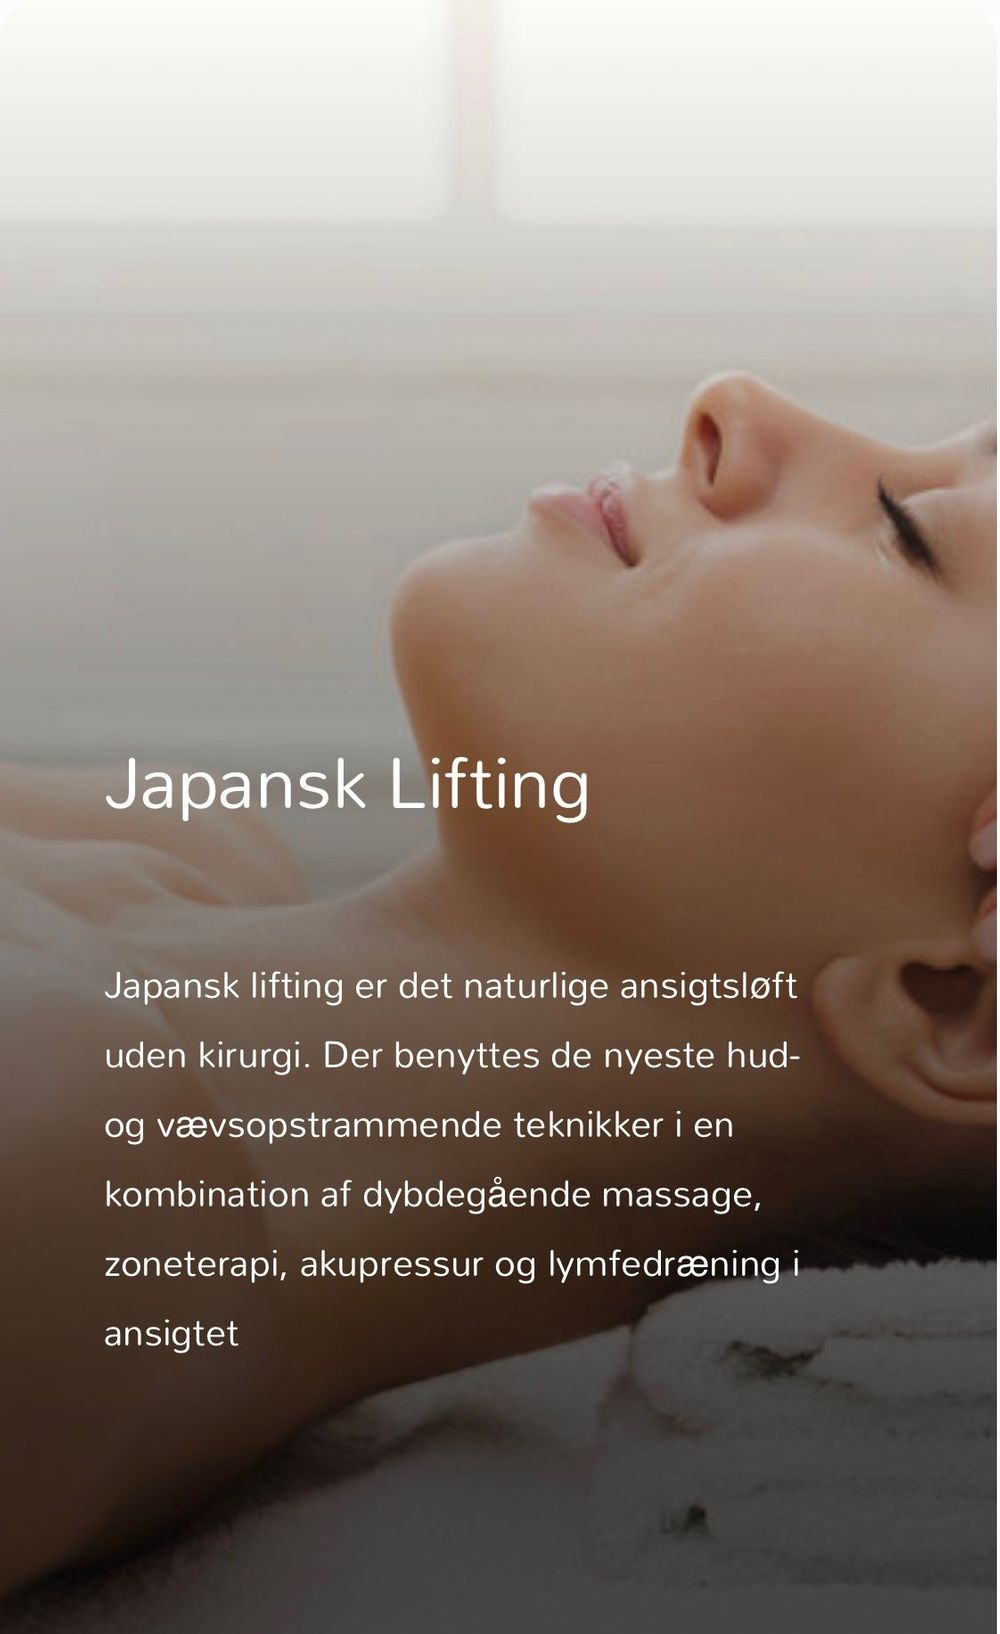 Japansk lifting